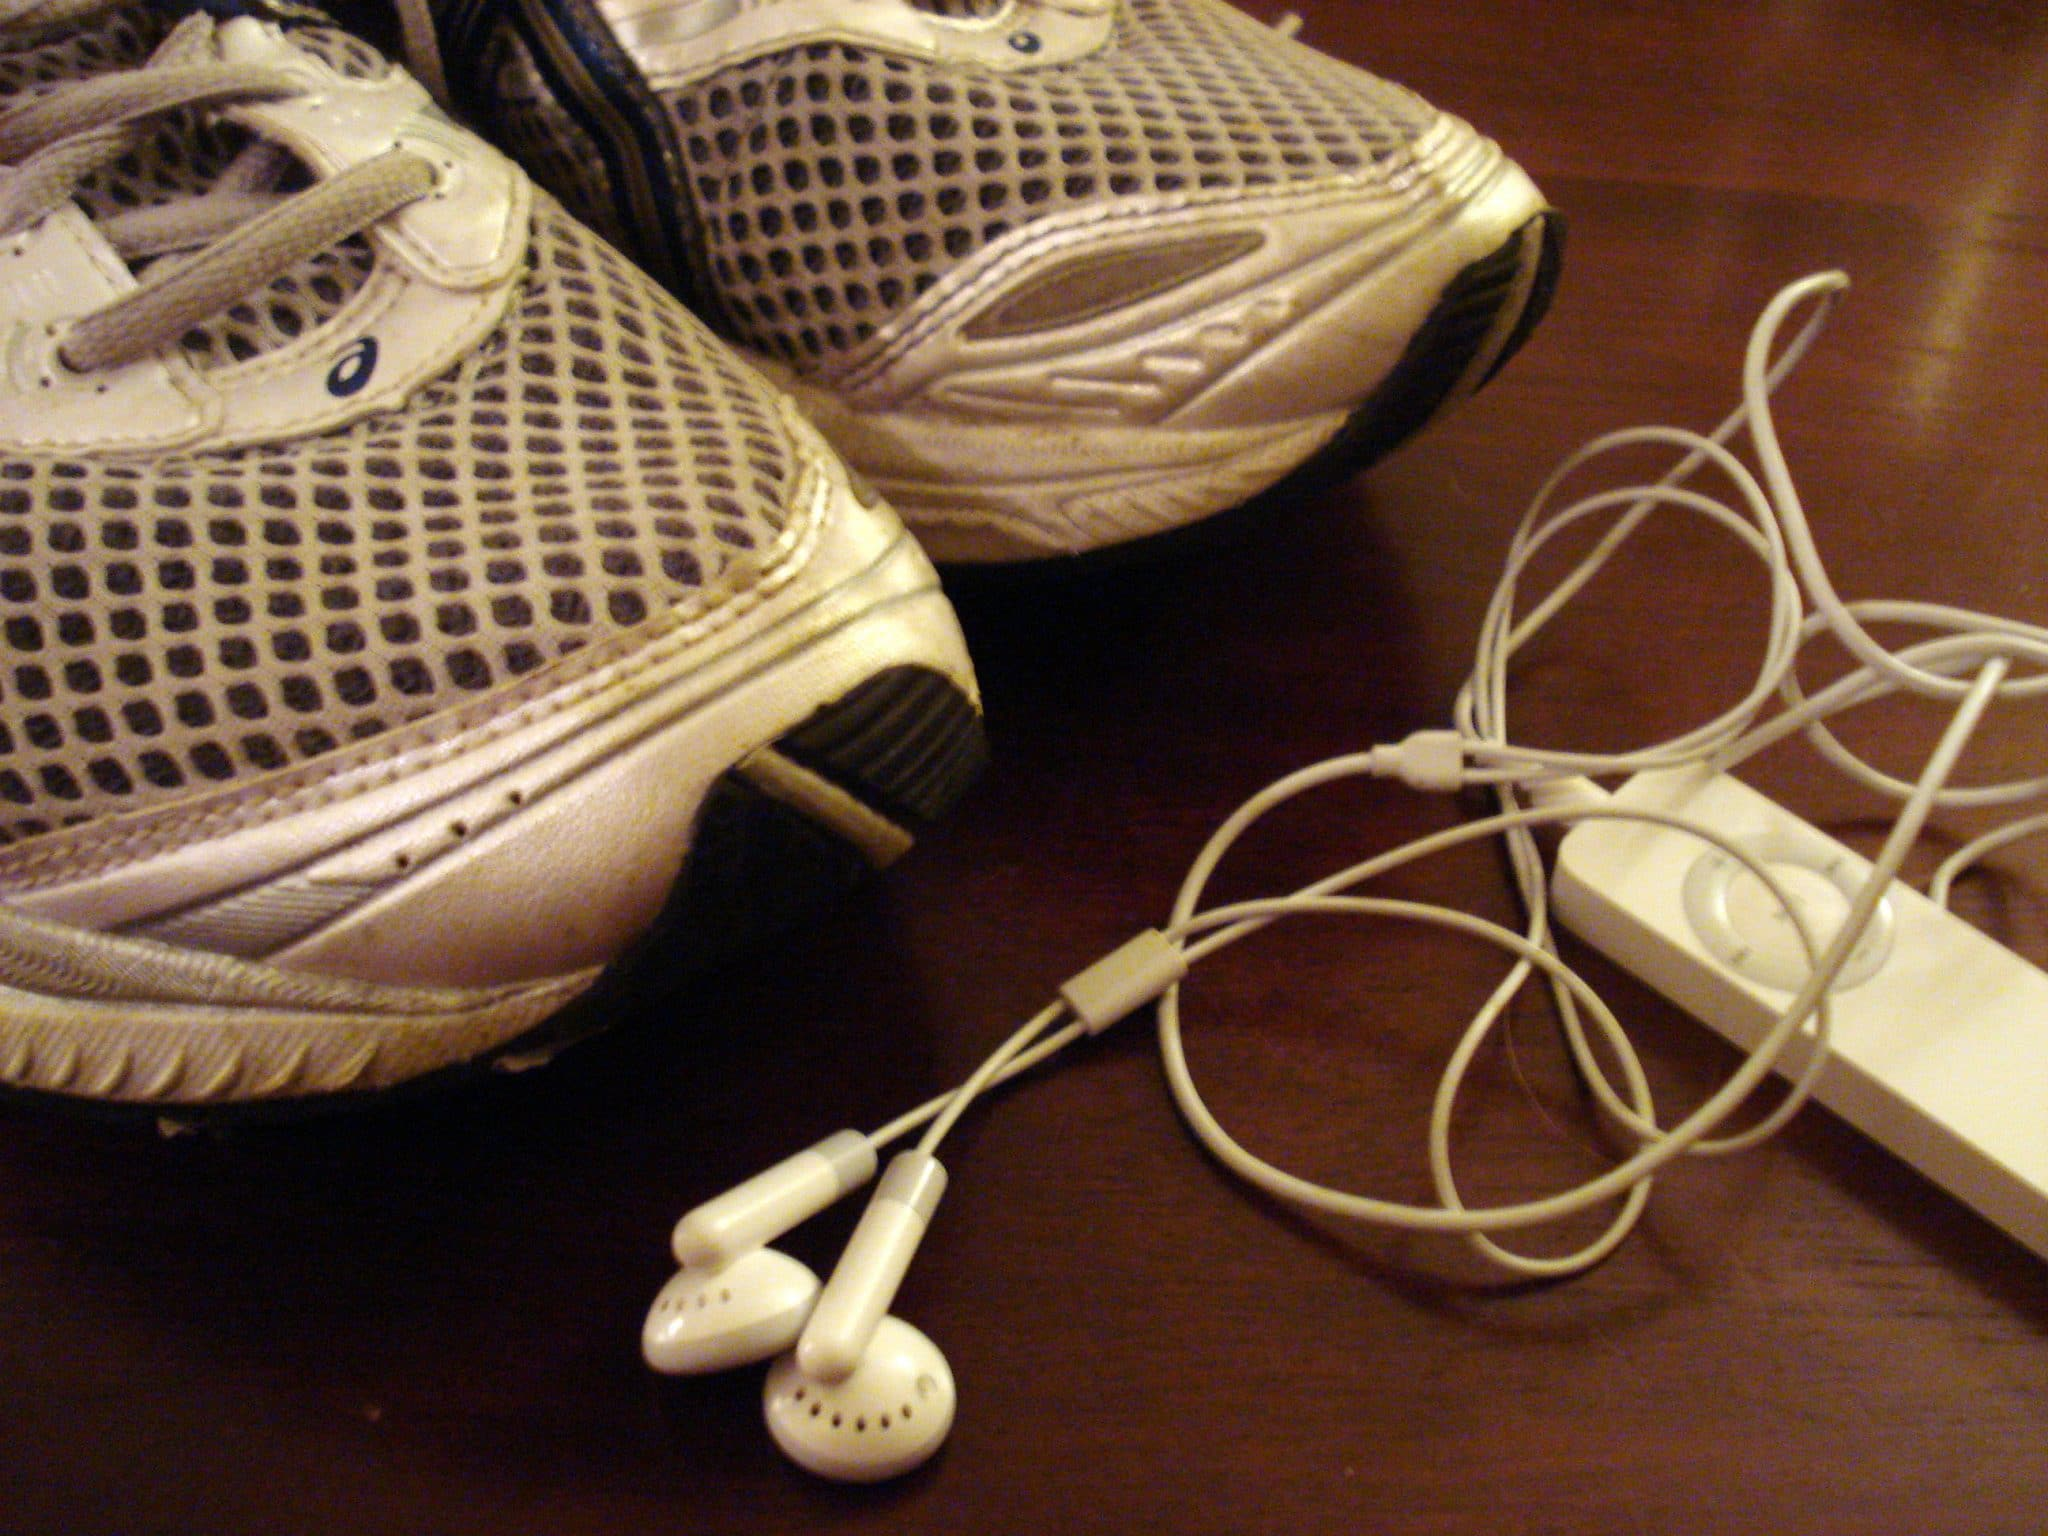 Running shoes and iPod in floor